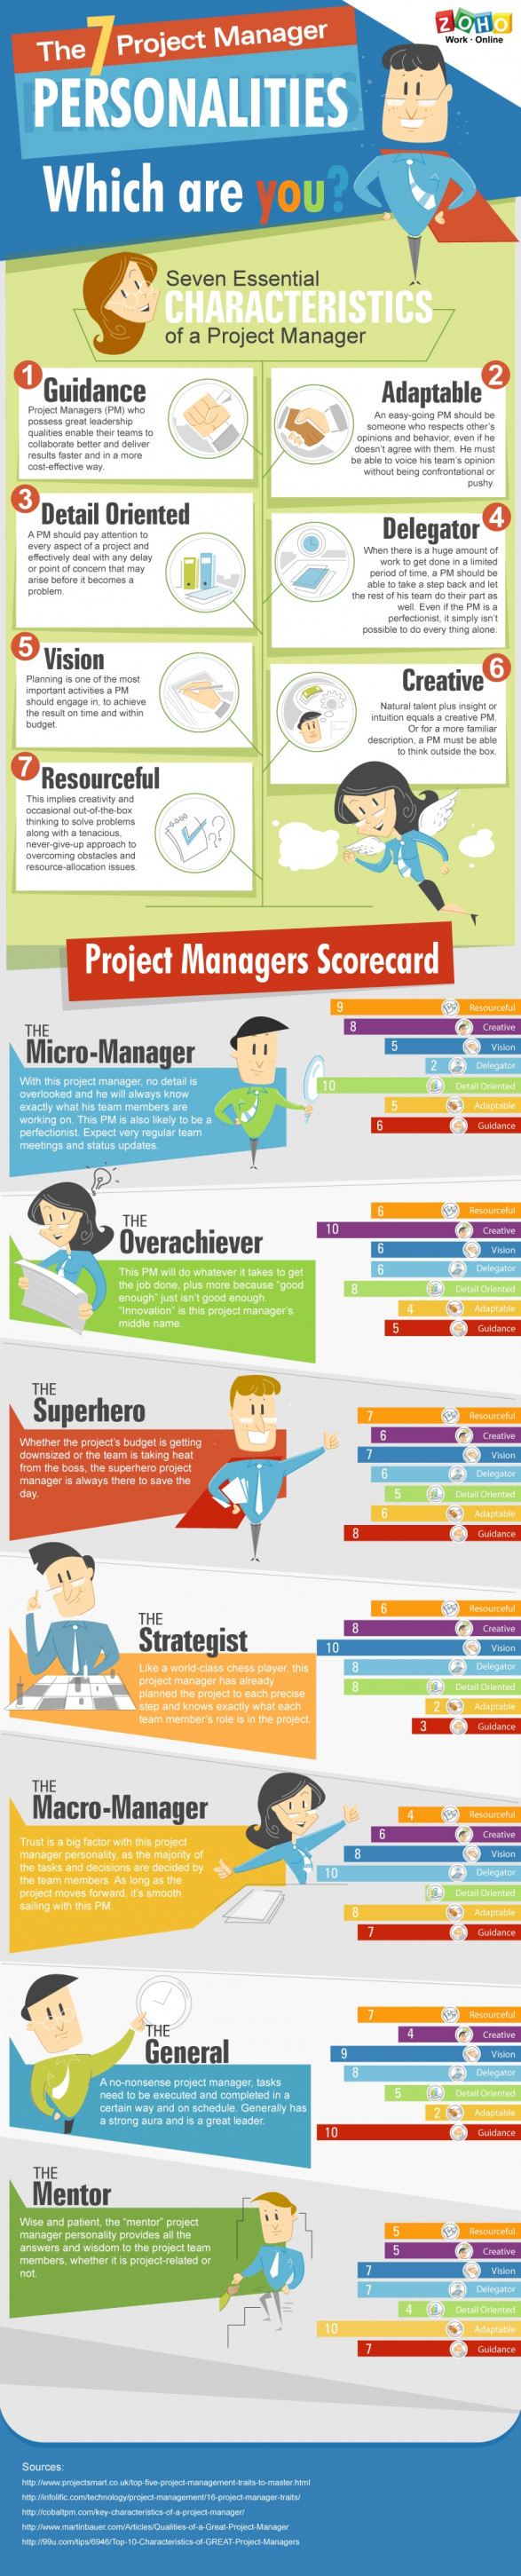 The 7 Project Manager Personalities: Which are you?